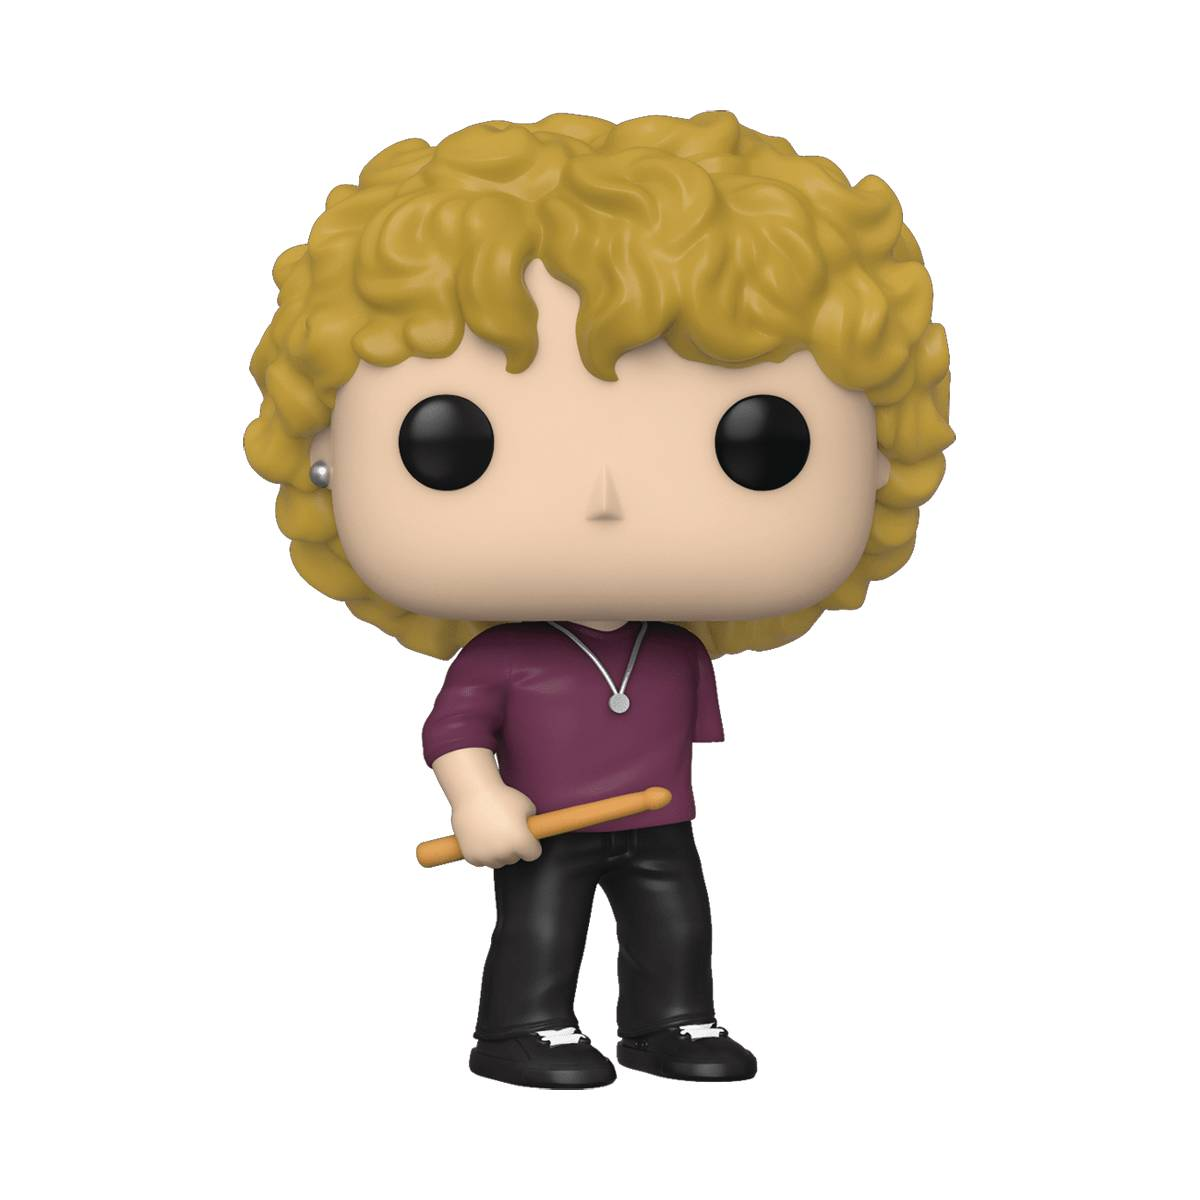 POP ROCKS DEF LEPPARD RICK ALLEN VIN FIG